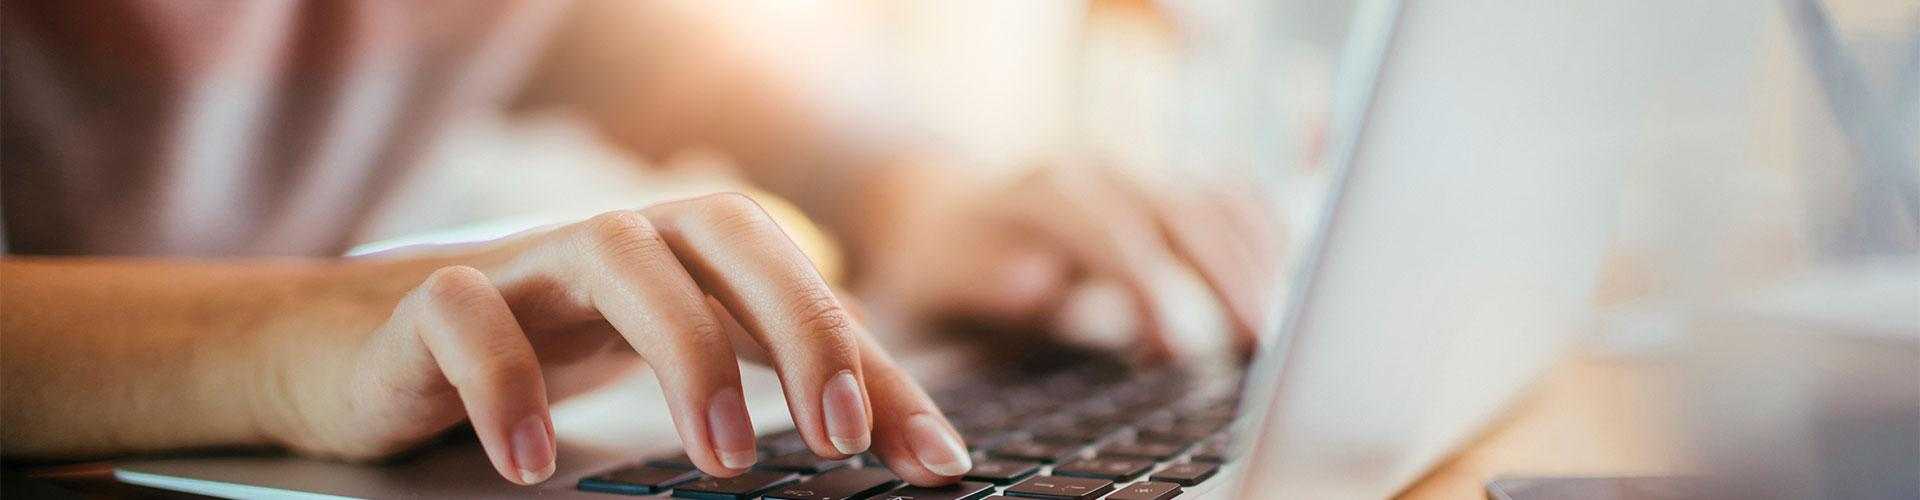 Stock image of hands typing on laptop